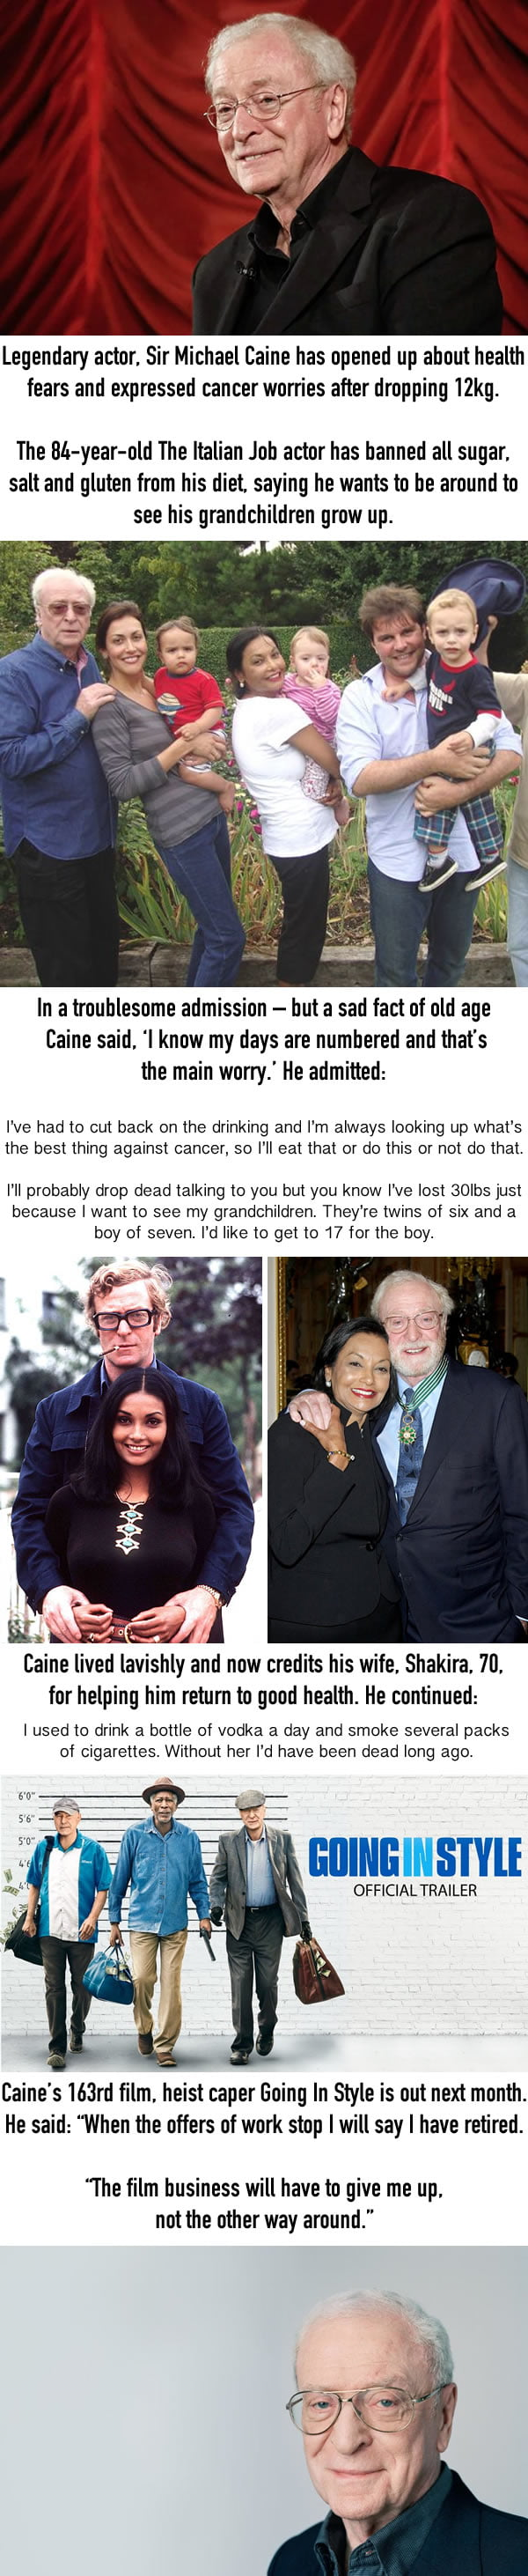 Sir Michael Caine Loses 12kg Amid Cancer Fears, Thanks His Wife For Keeping Him Going